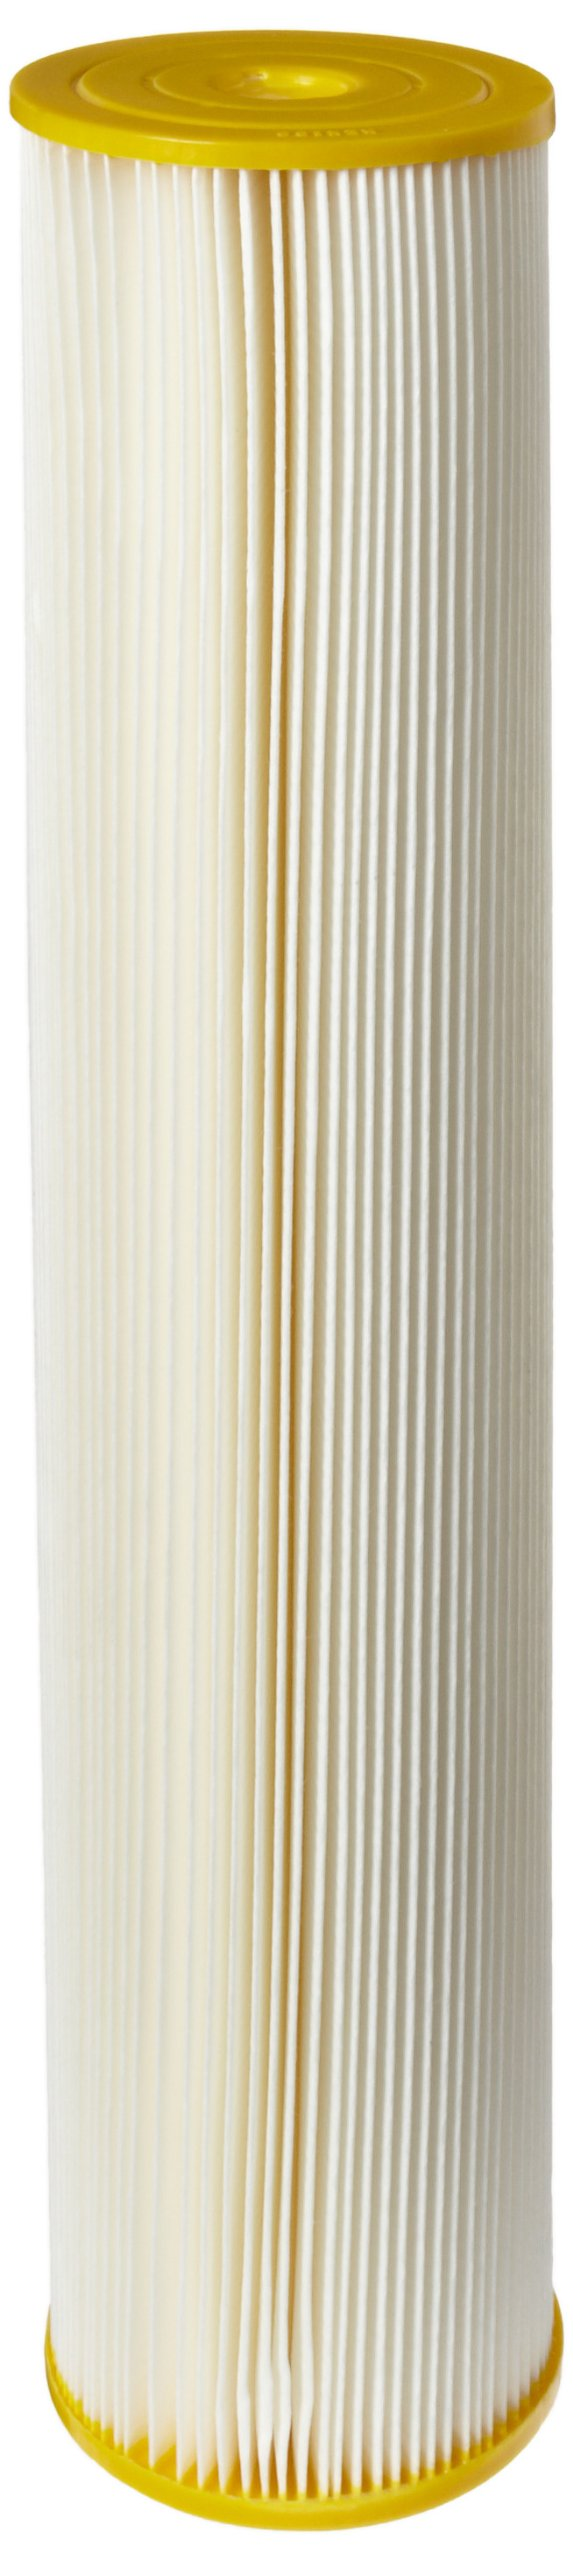 Pentek ECP50-20BB Pleated Cellulose Polyester Filter Cartridge, 20'' x 4-1/2'', 50 Microns by Pentek